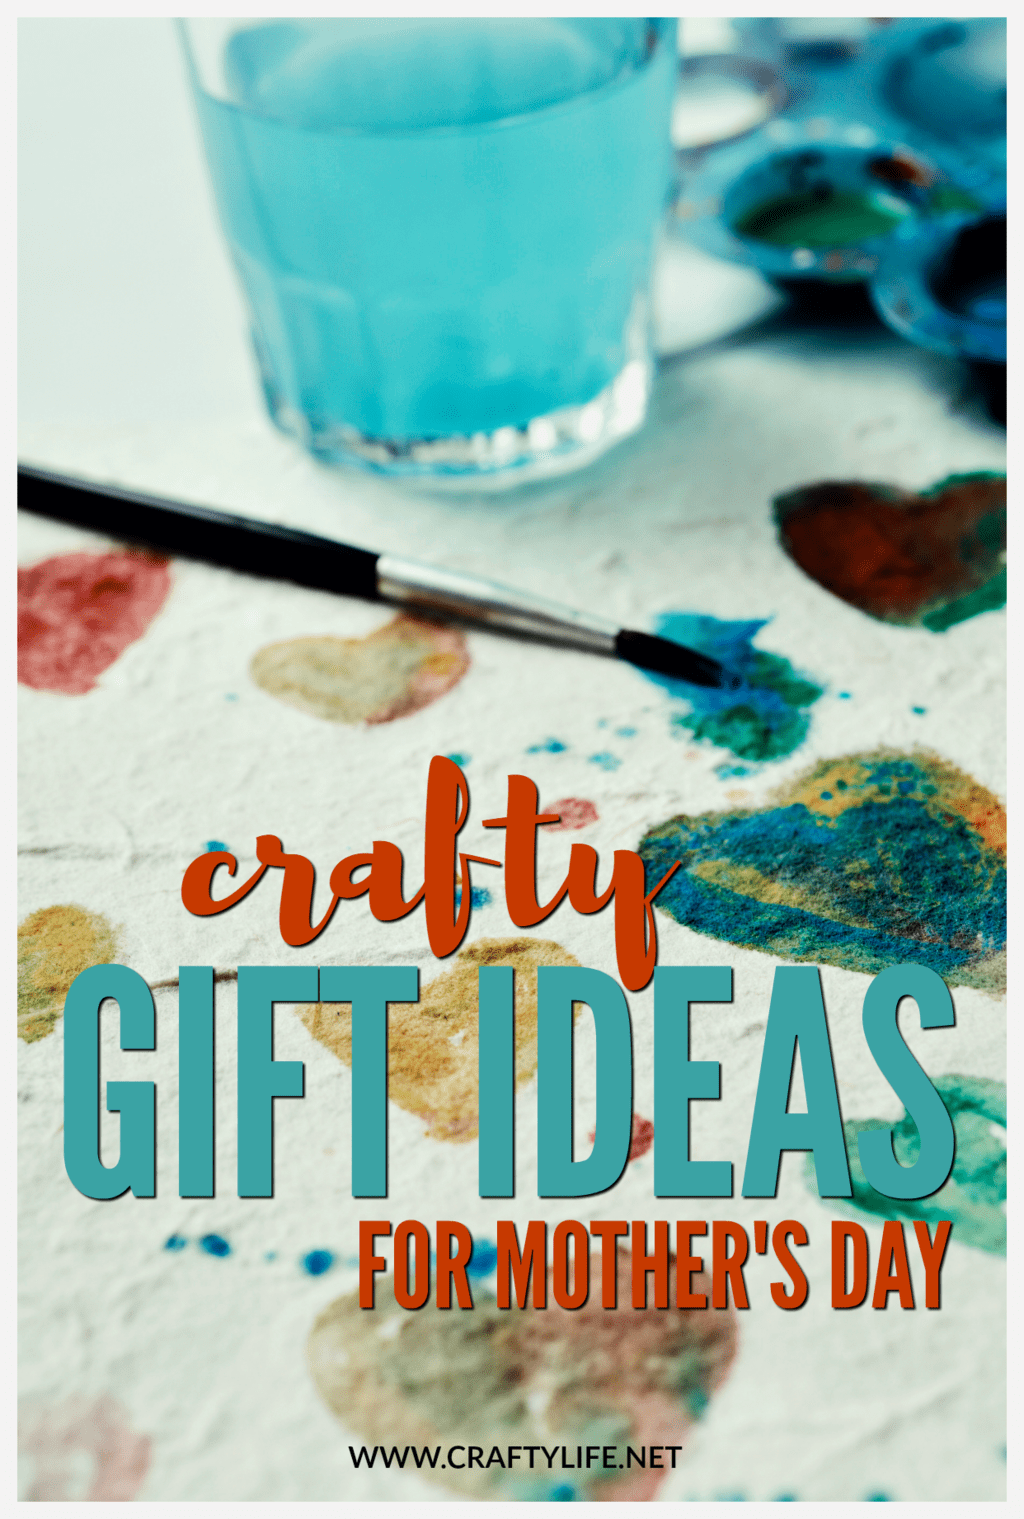 Crafty Gift Ideas for Mother's Day - 6 great gift ideas for your crafty mom!